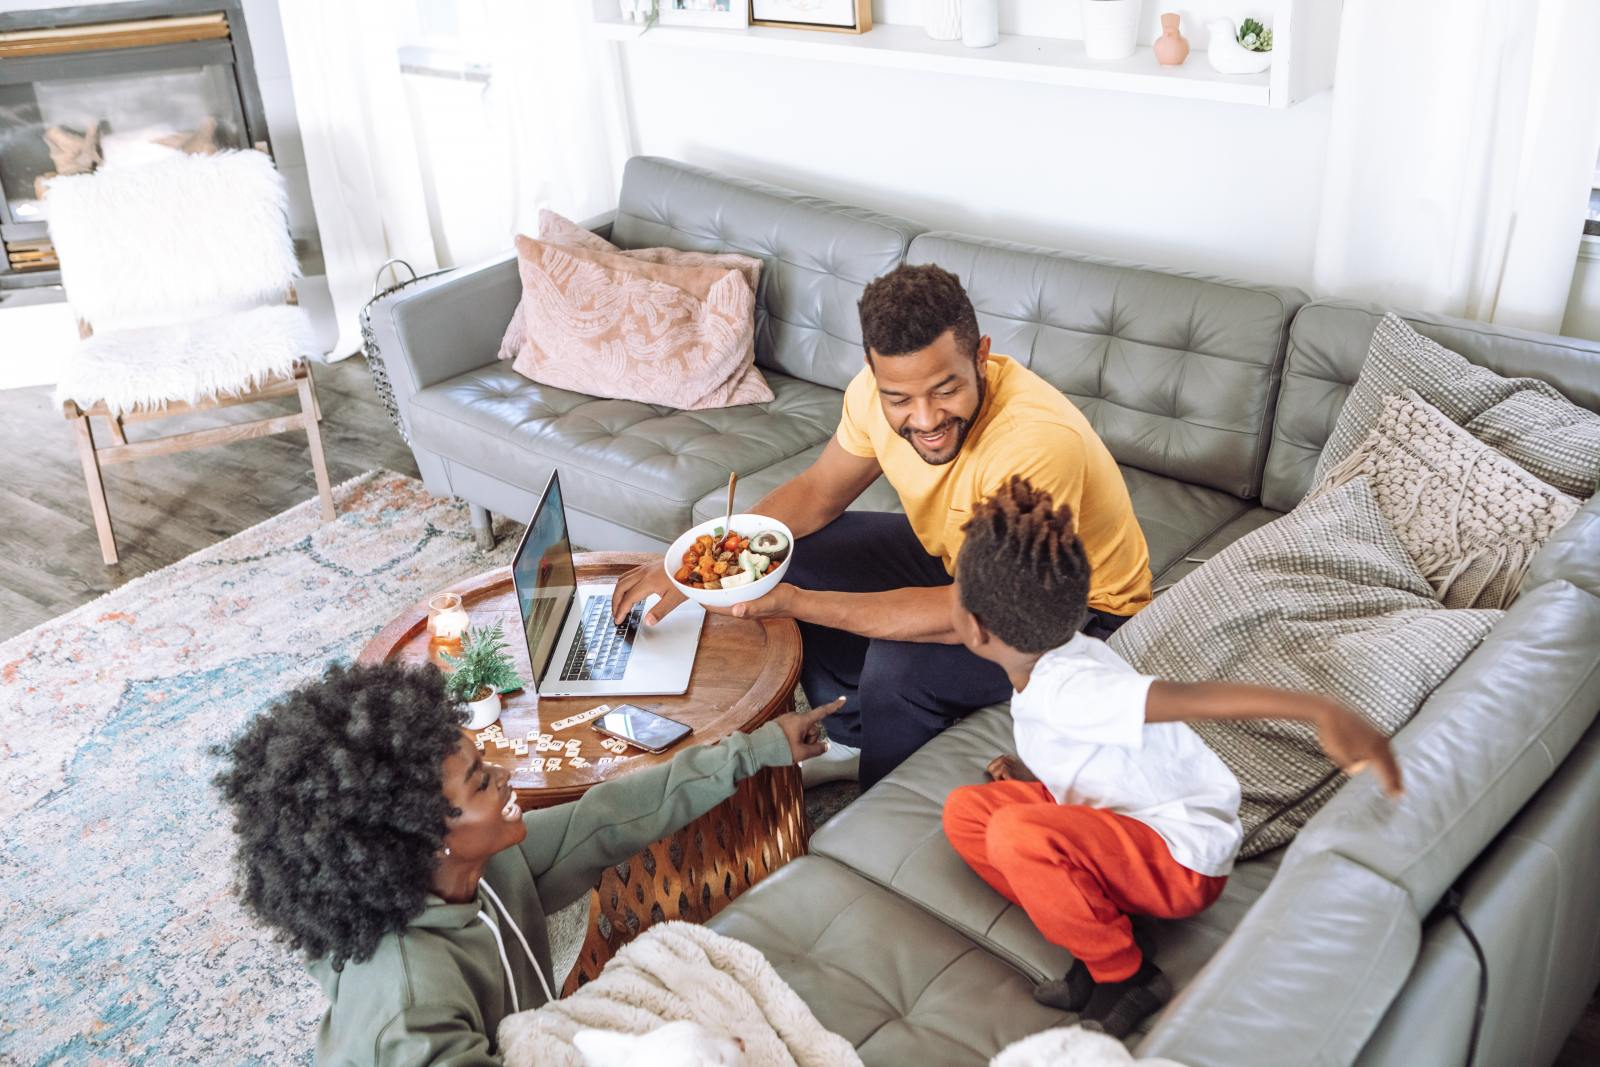 man in yellow crew neck shirt sits on grey sofa smiling at child wearing red trousers, who is sitting on the sofa. Woman wearing grey jacket laughs nearby. The man has a laptop open on the table in front of him.